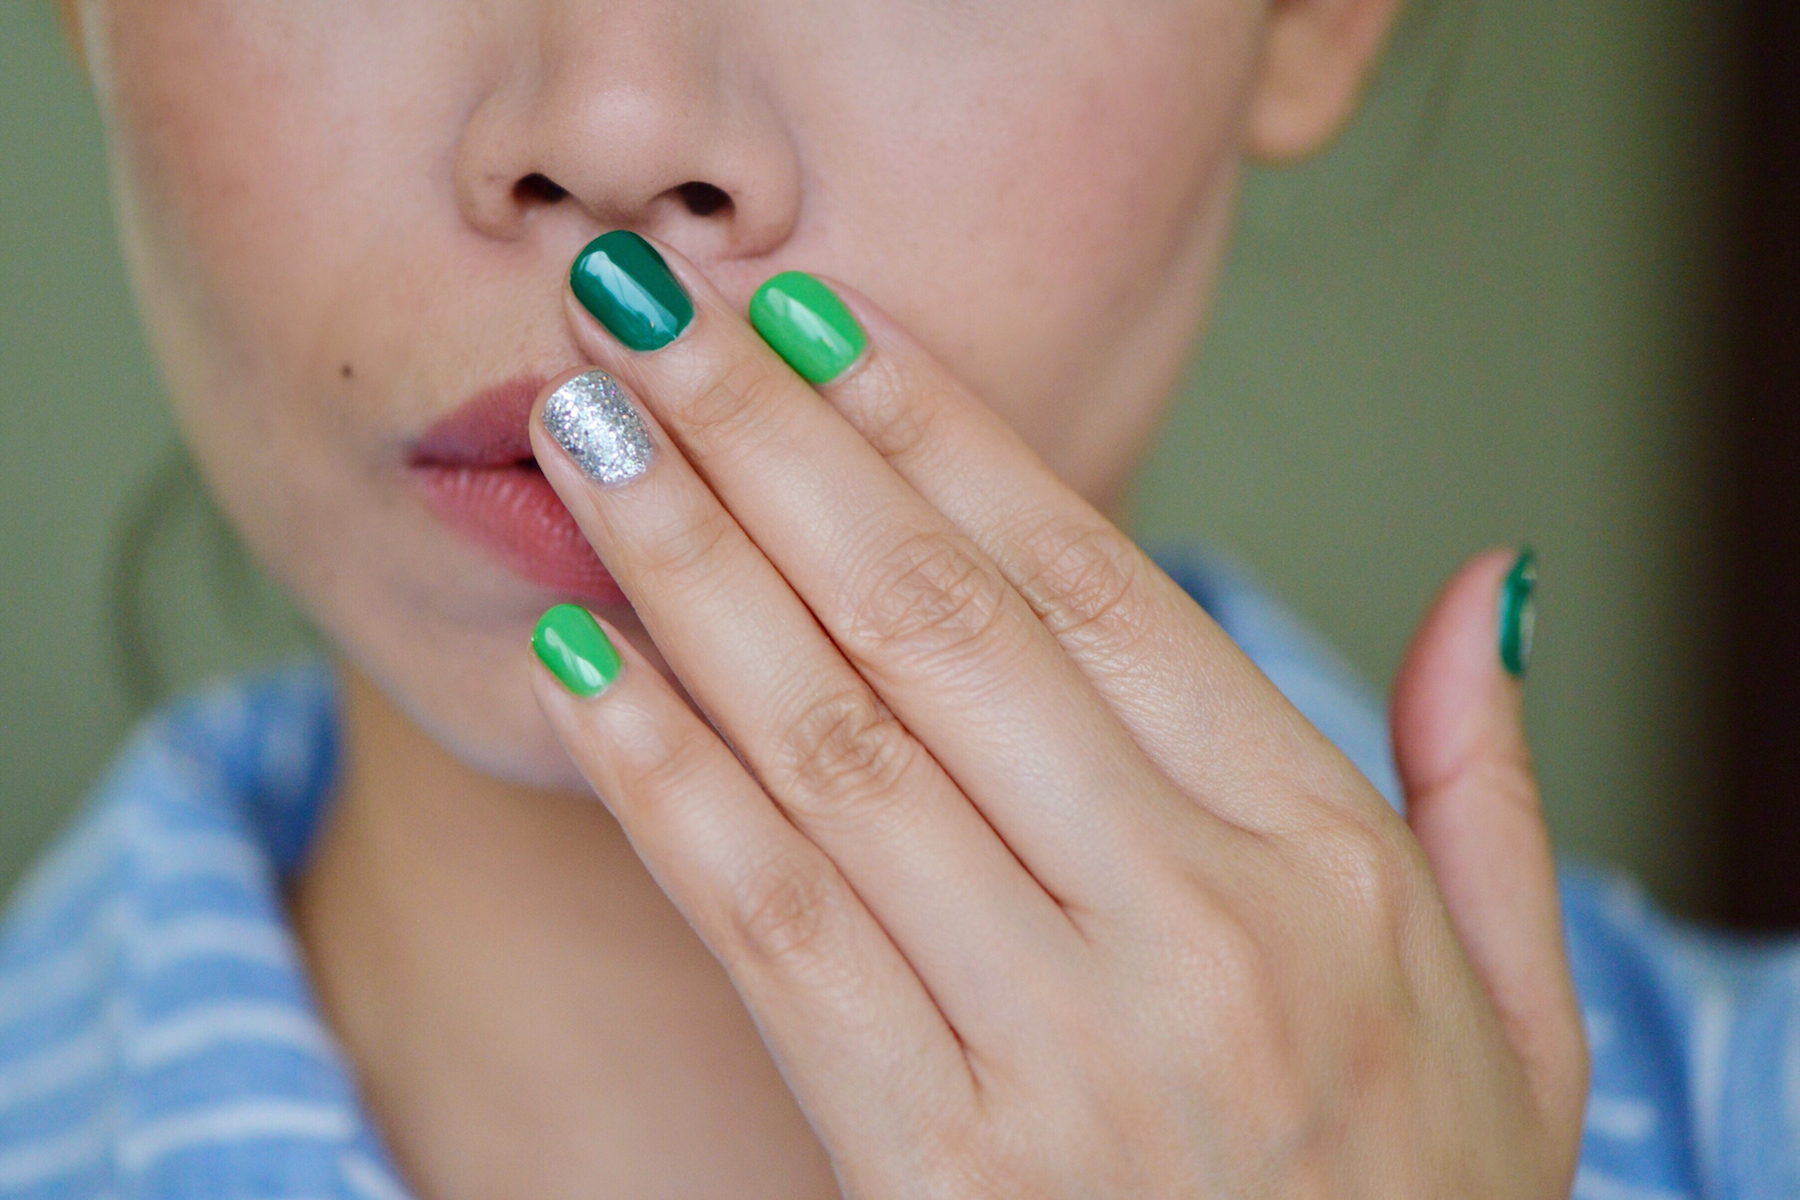 10 Best St. Patrick\'s Day Nail Art Ideas From Instagram | Real Simple